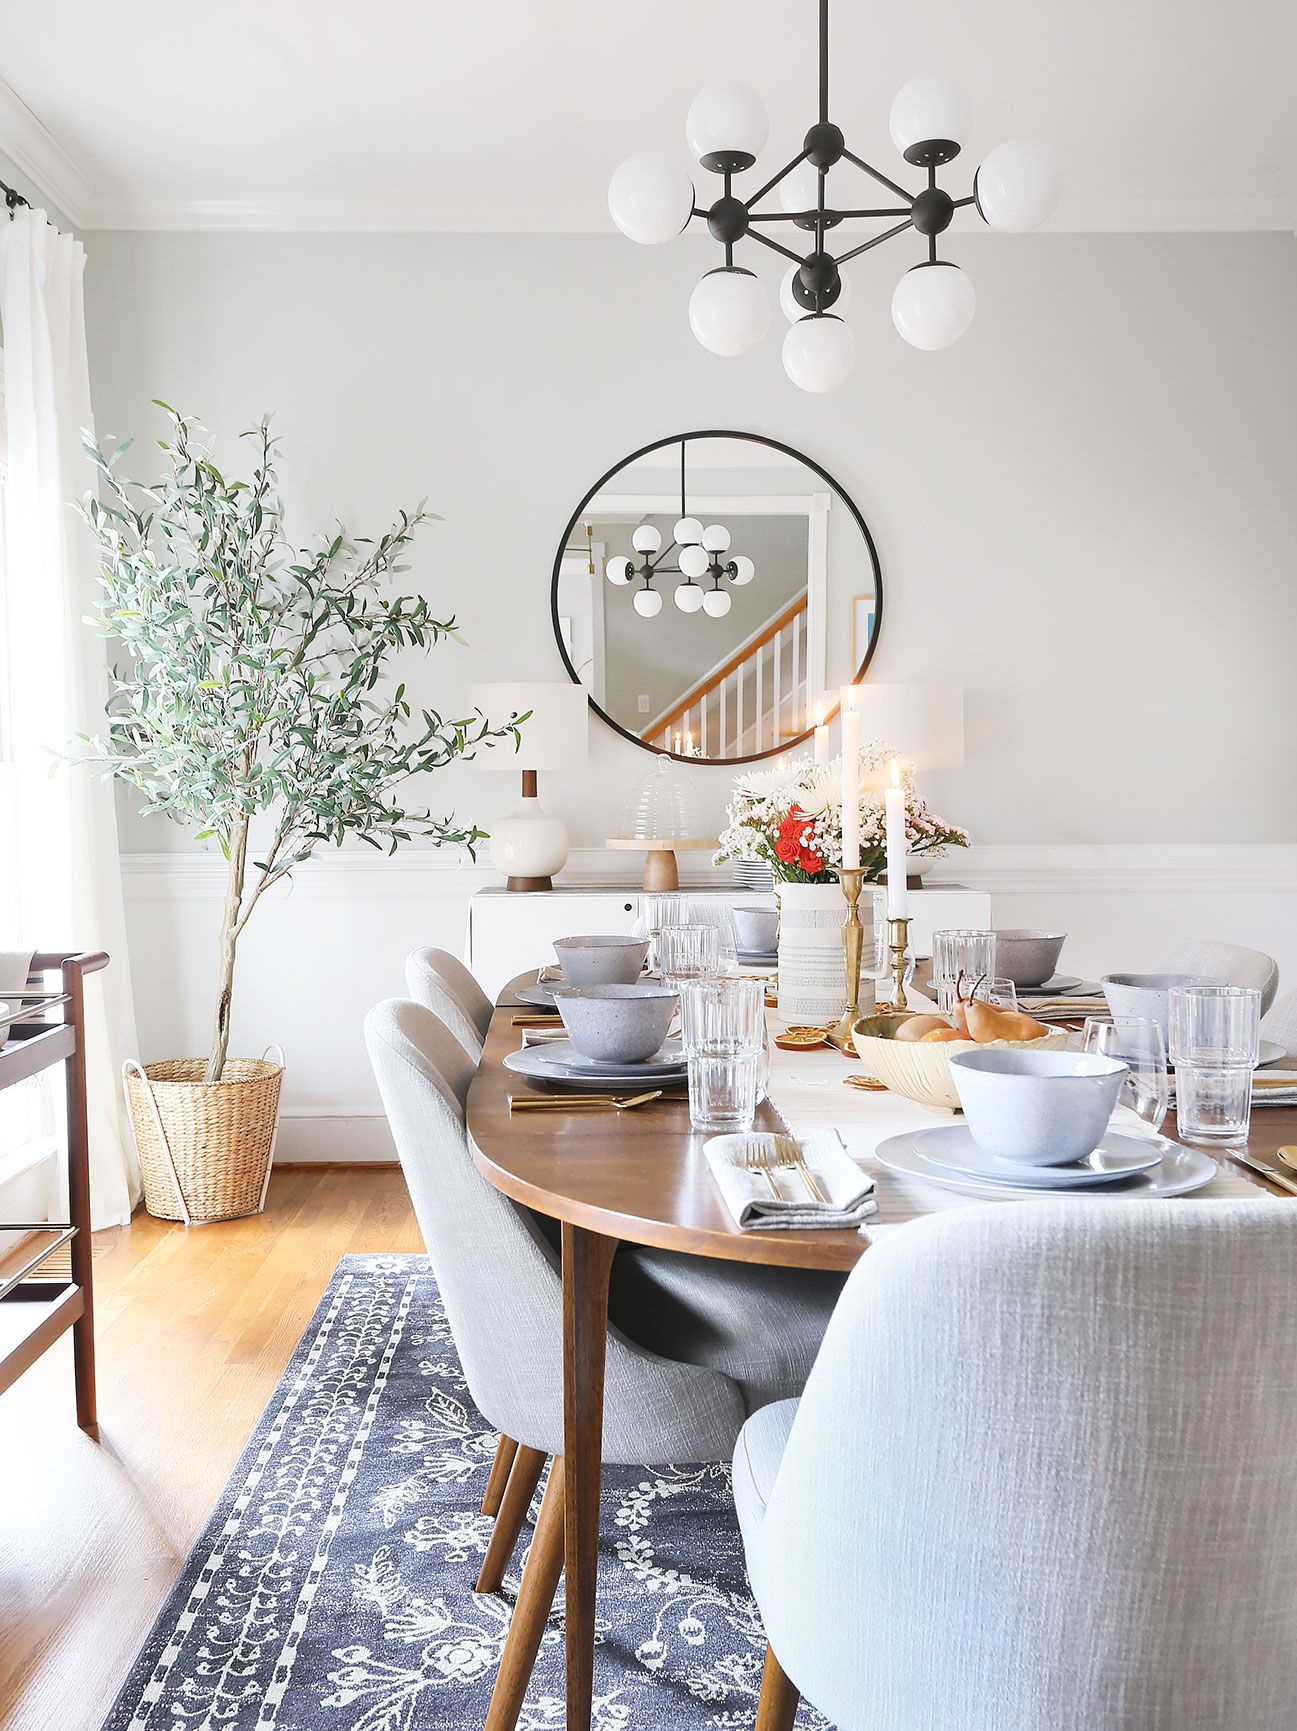 Simple Dining Room Design: My Modern & Organic Holiday Tablescape